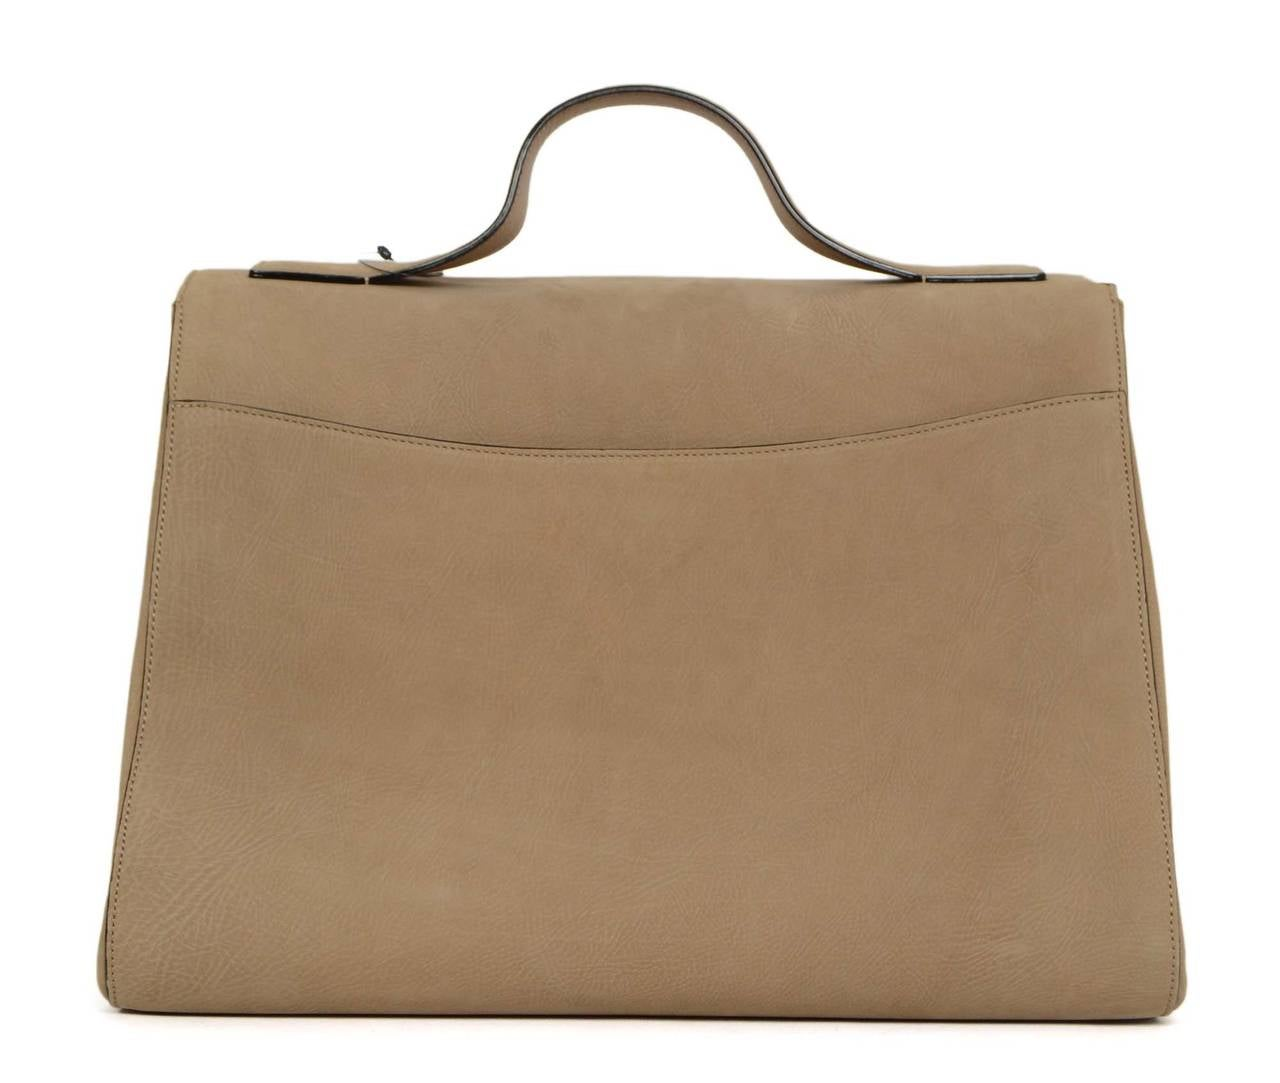 "VICTORIA BECKHAM Tan Suede ""Harper"" Bag SHW In Excellent Condition For Sale In New York, NY"